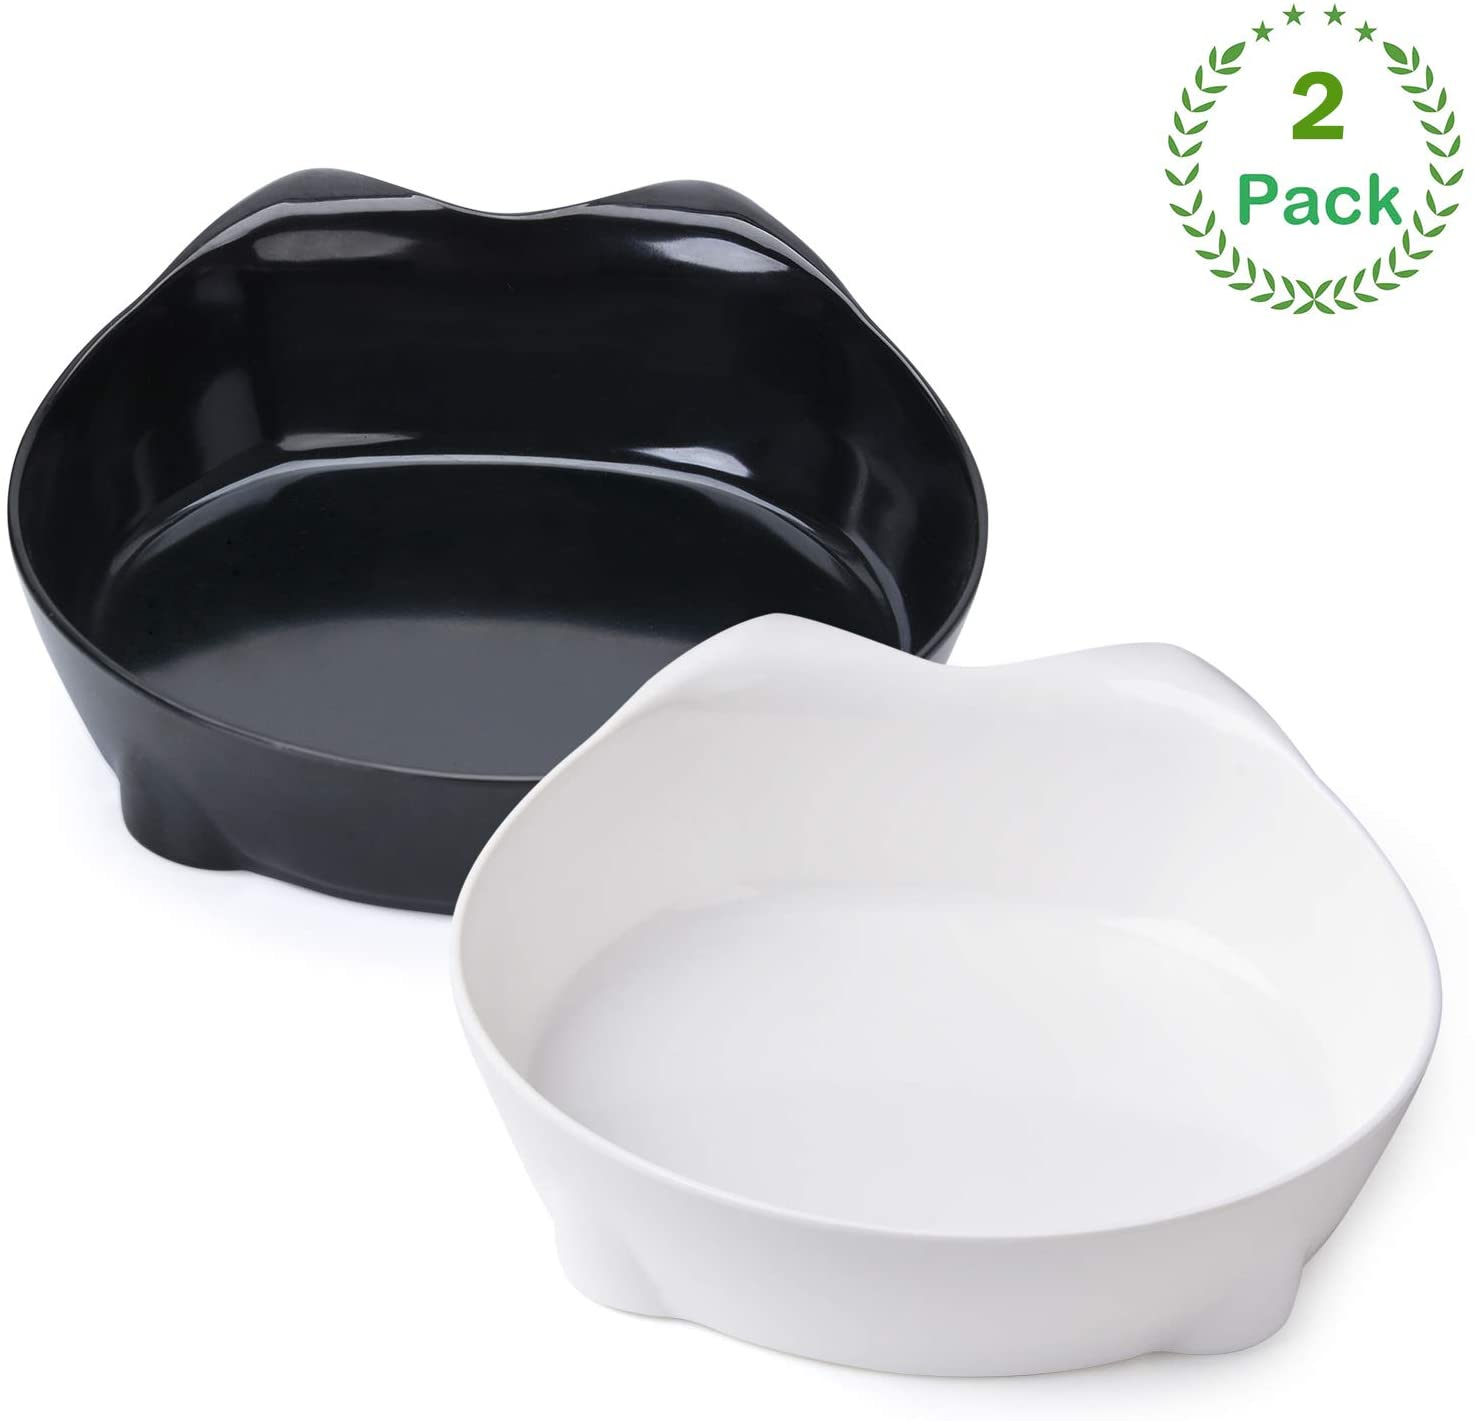 XPangle Cat Bowl, Shallow Cat Food Bowls,Wide Cat Dish,Non Slip Cat Feeding Bowls,Cat Food Bowl for Relief of Whisker Fatigue Pet Food & Water Bowls Set of 2(Safe Food-Grade Melamine Material)